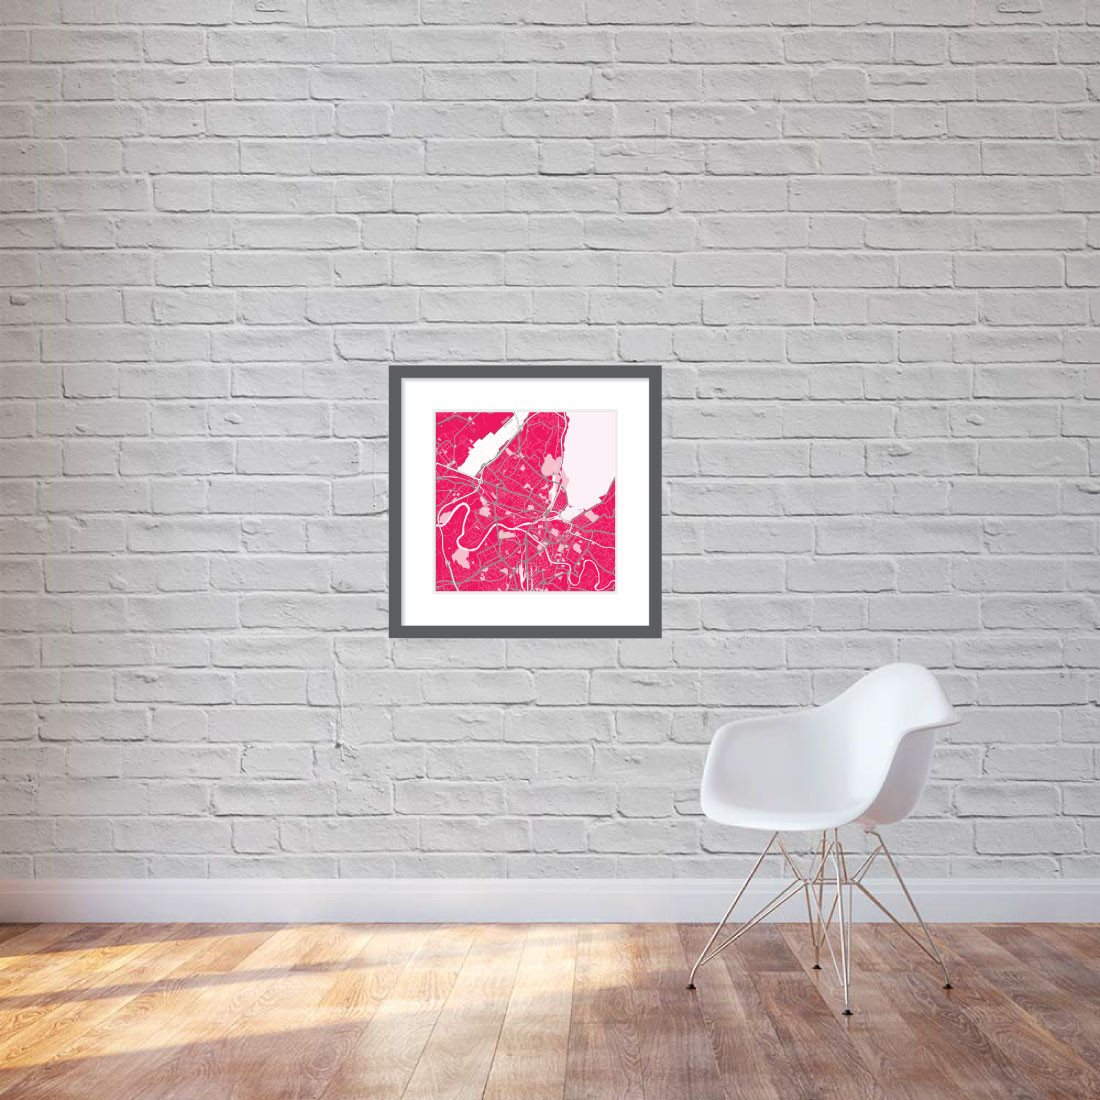 Matt print 60cm x 60cm Geneva strawberry milk